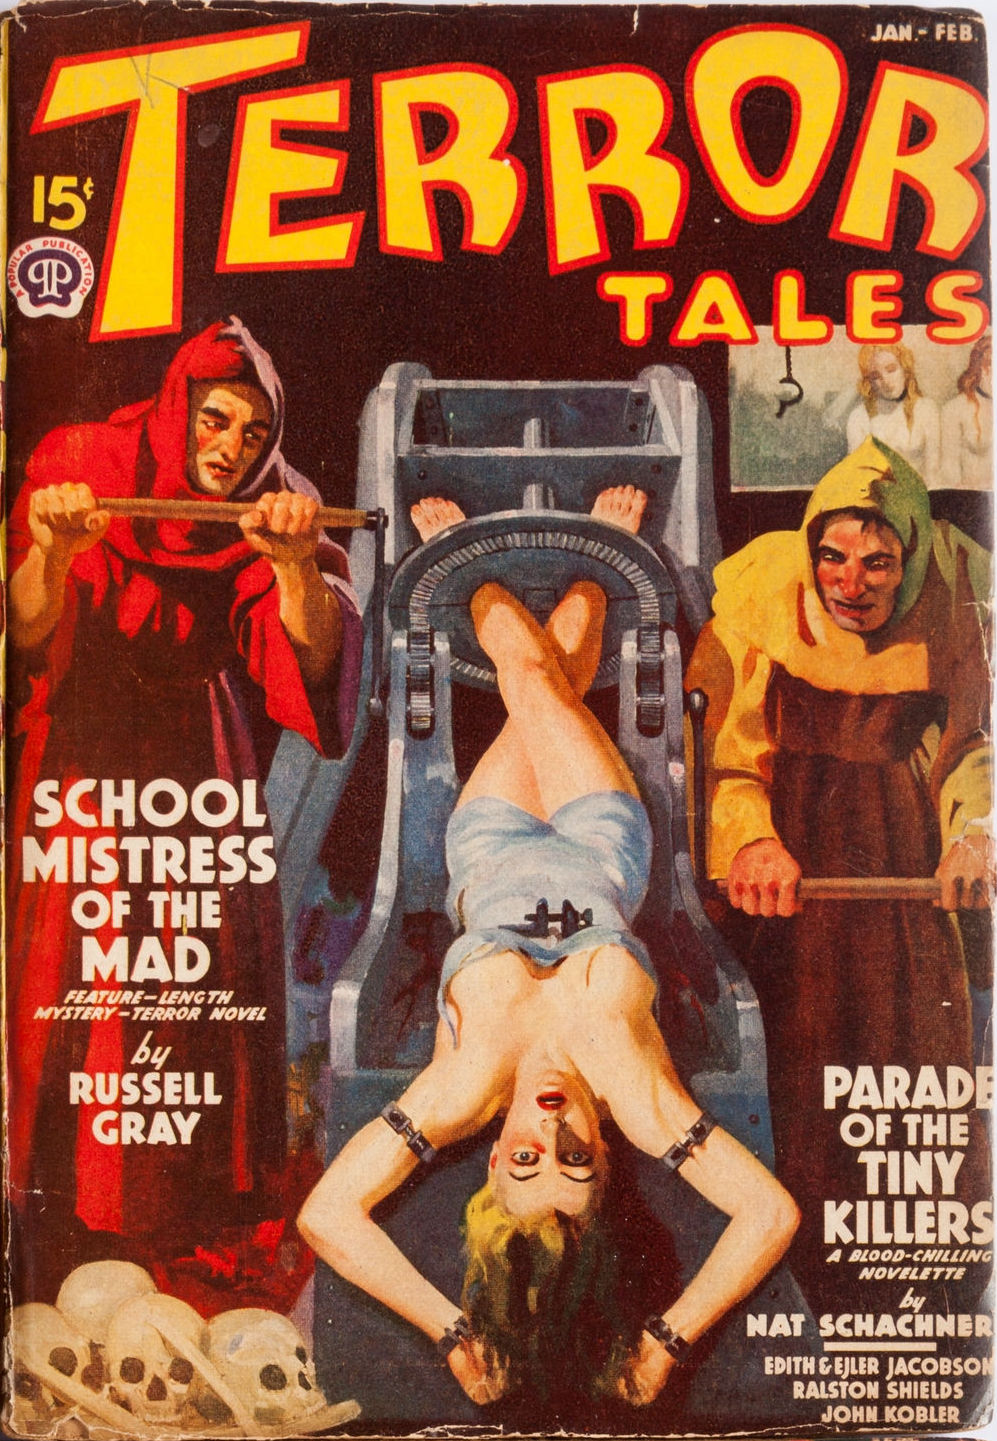 https://pulpcovers.com/wp-content/uploads/2011/03/Terror-Tales-January-February-1939.jpg